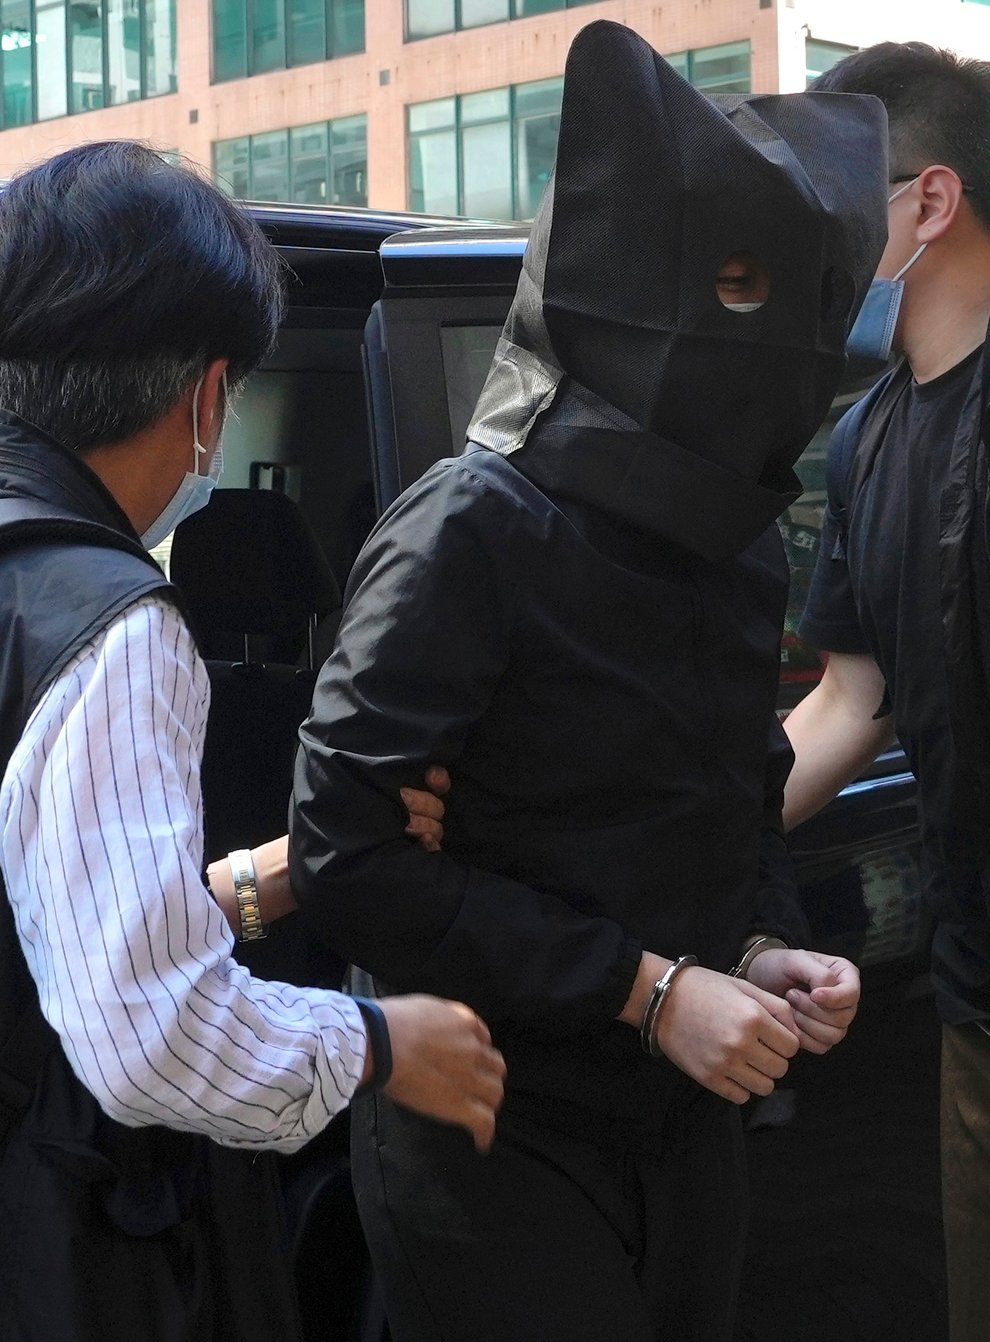 A hooded suspect is accompanied by police officers to searchfor evidence at an office in Hong Kong (Vincent Yu/AP)